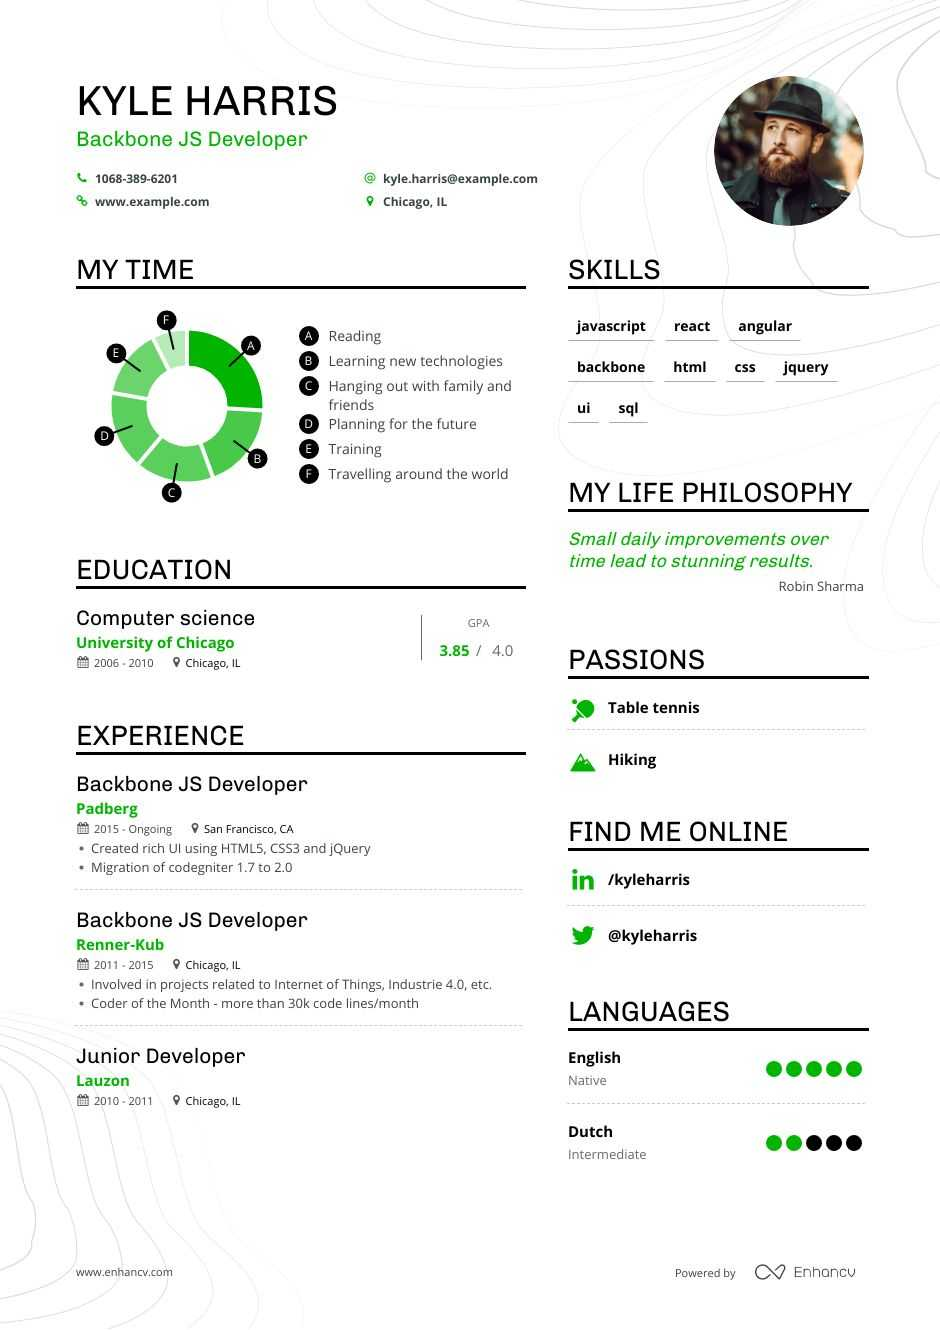 backbone js developer resume example